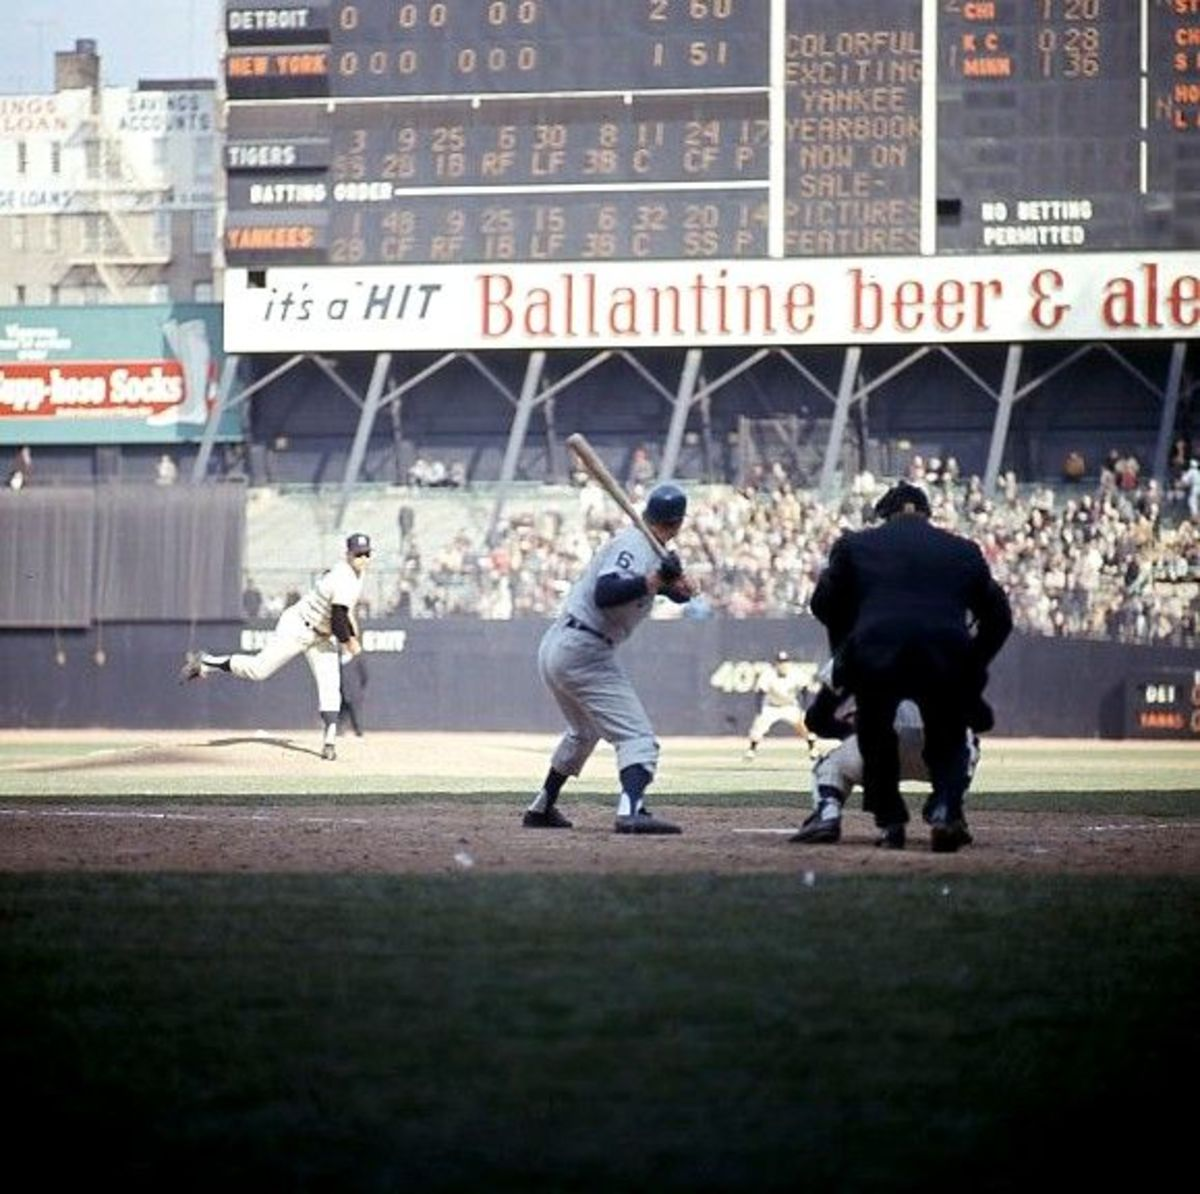 Sunday, June 19. Jim Bouton facing Al Kaline in the top of the 9th, down 2-1. Kaline smacked a double, though he did not score.  Yanks lost 2-1.